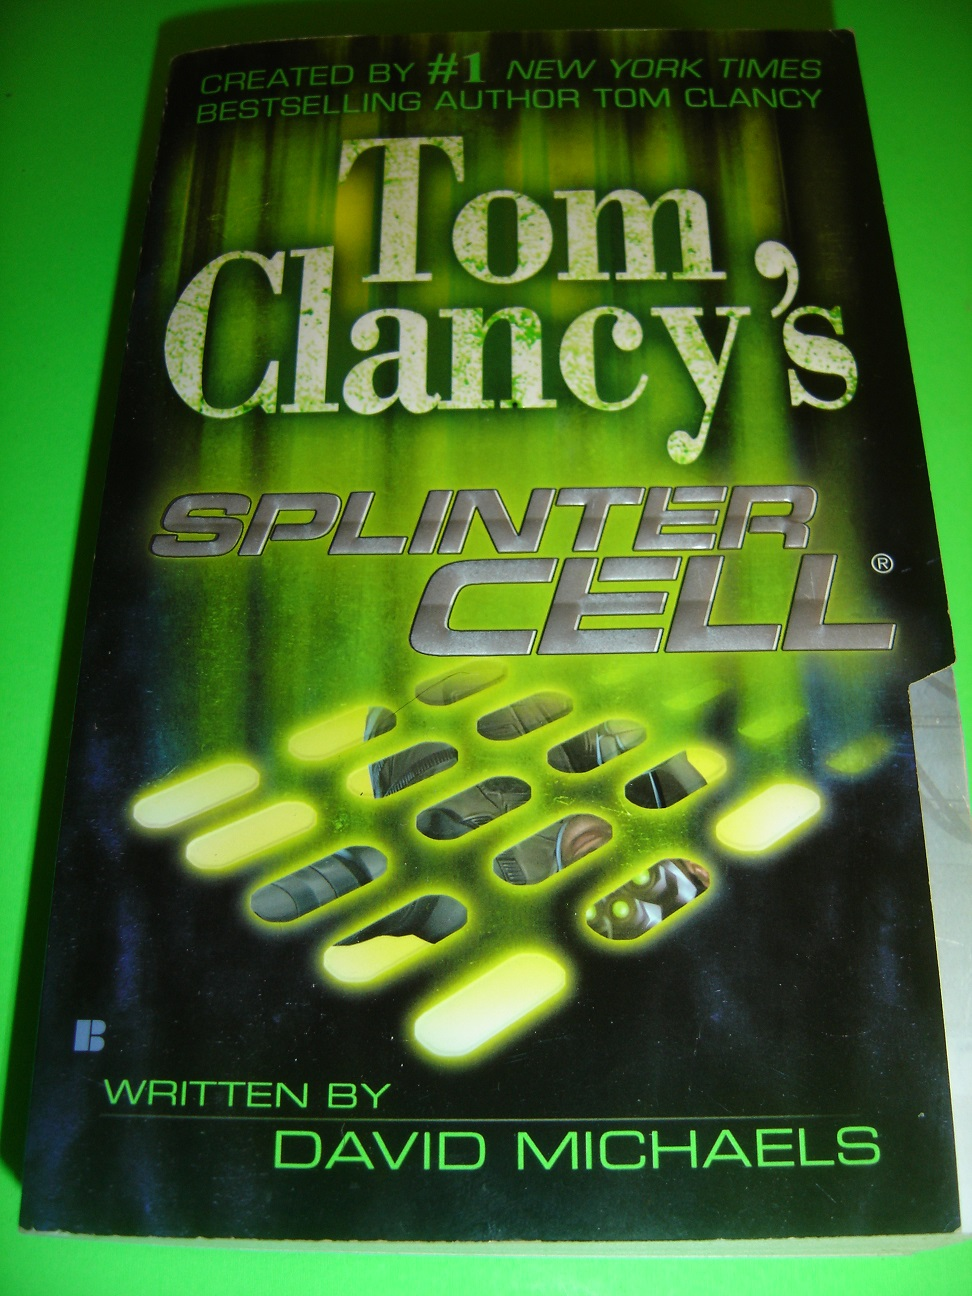 tom-clancy-s-splinter-cell-by-david-michaels-december-2004-paperback-book-3